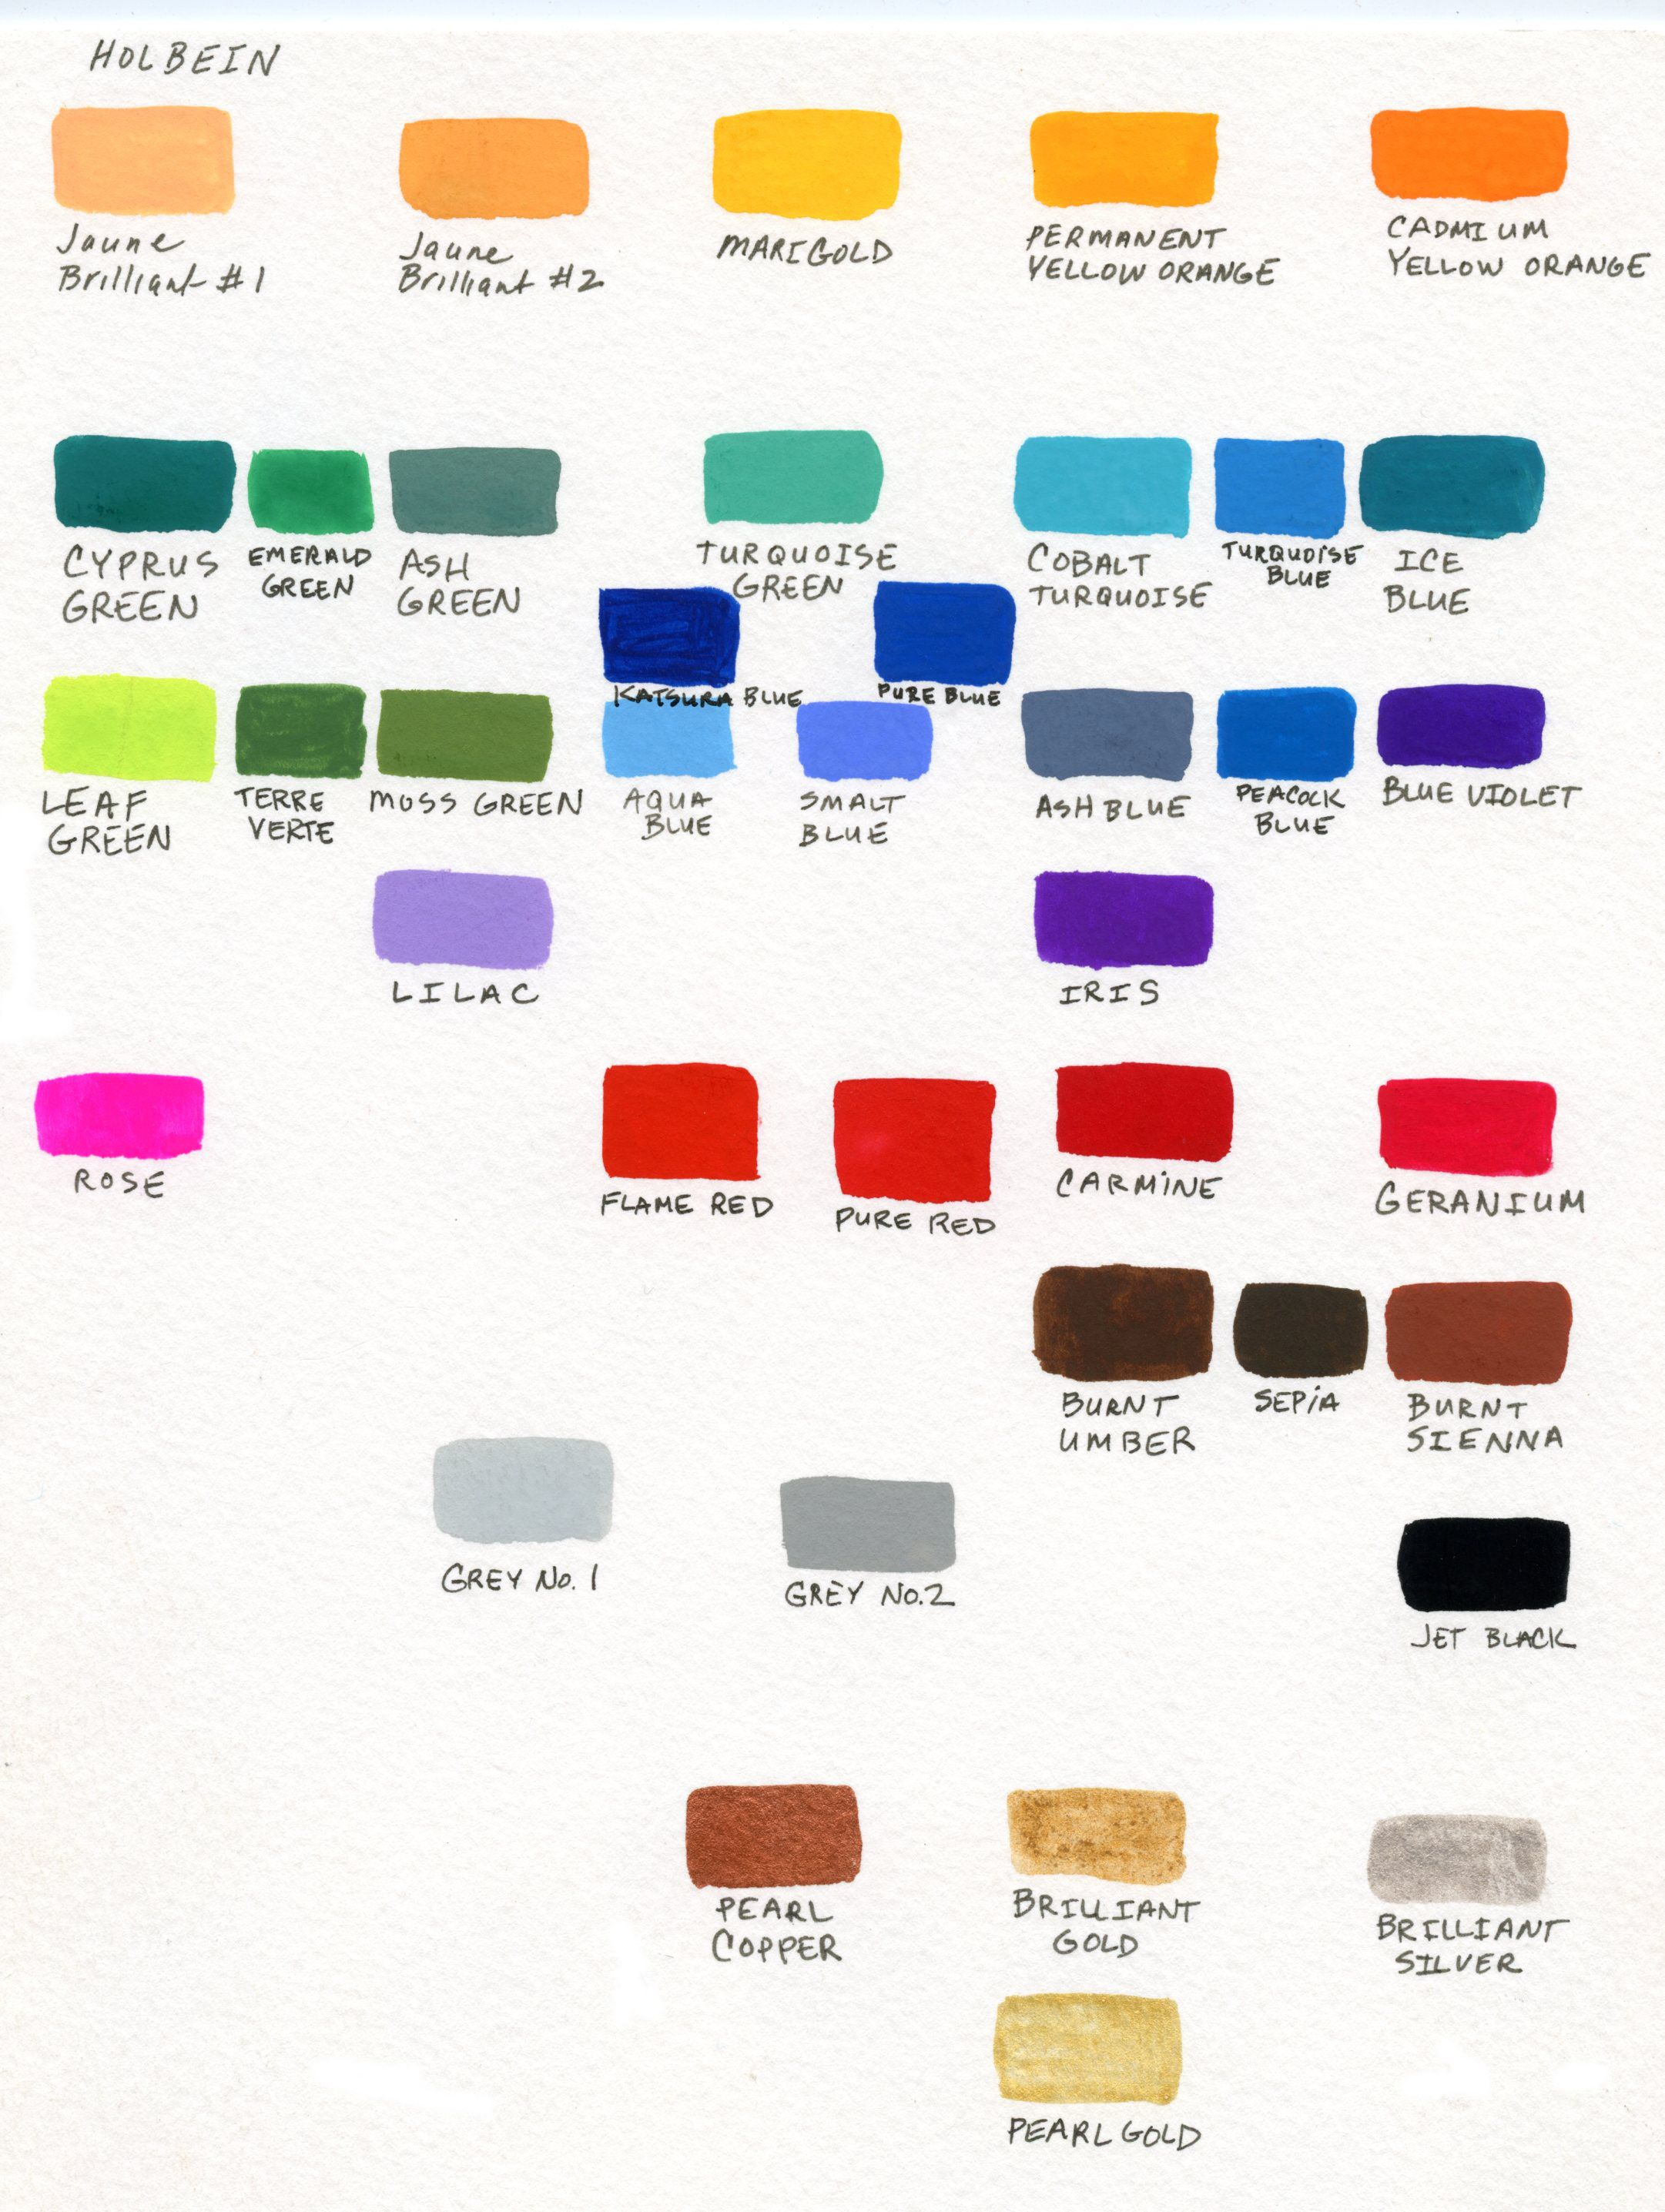 Holbein Gouache Color Chart Painted As A Beginner To Gouache As A